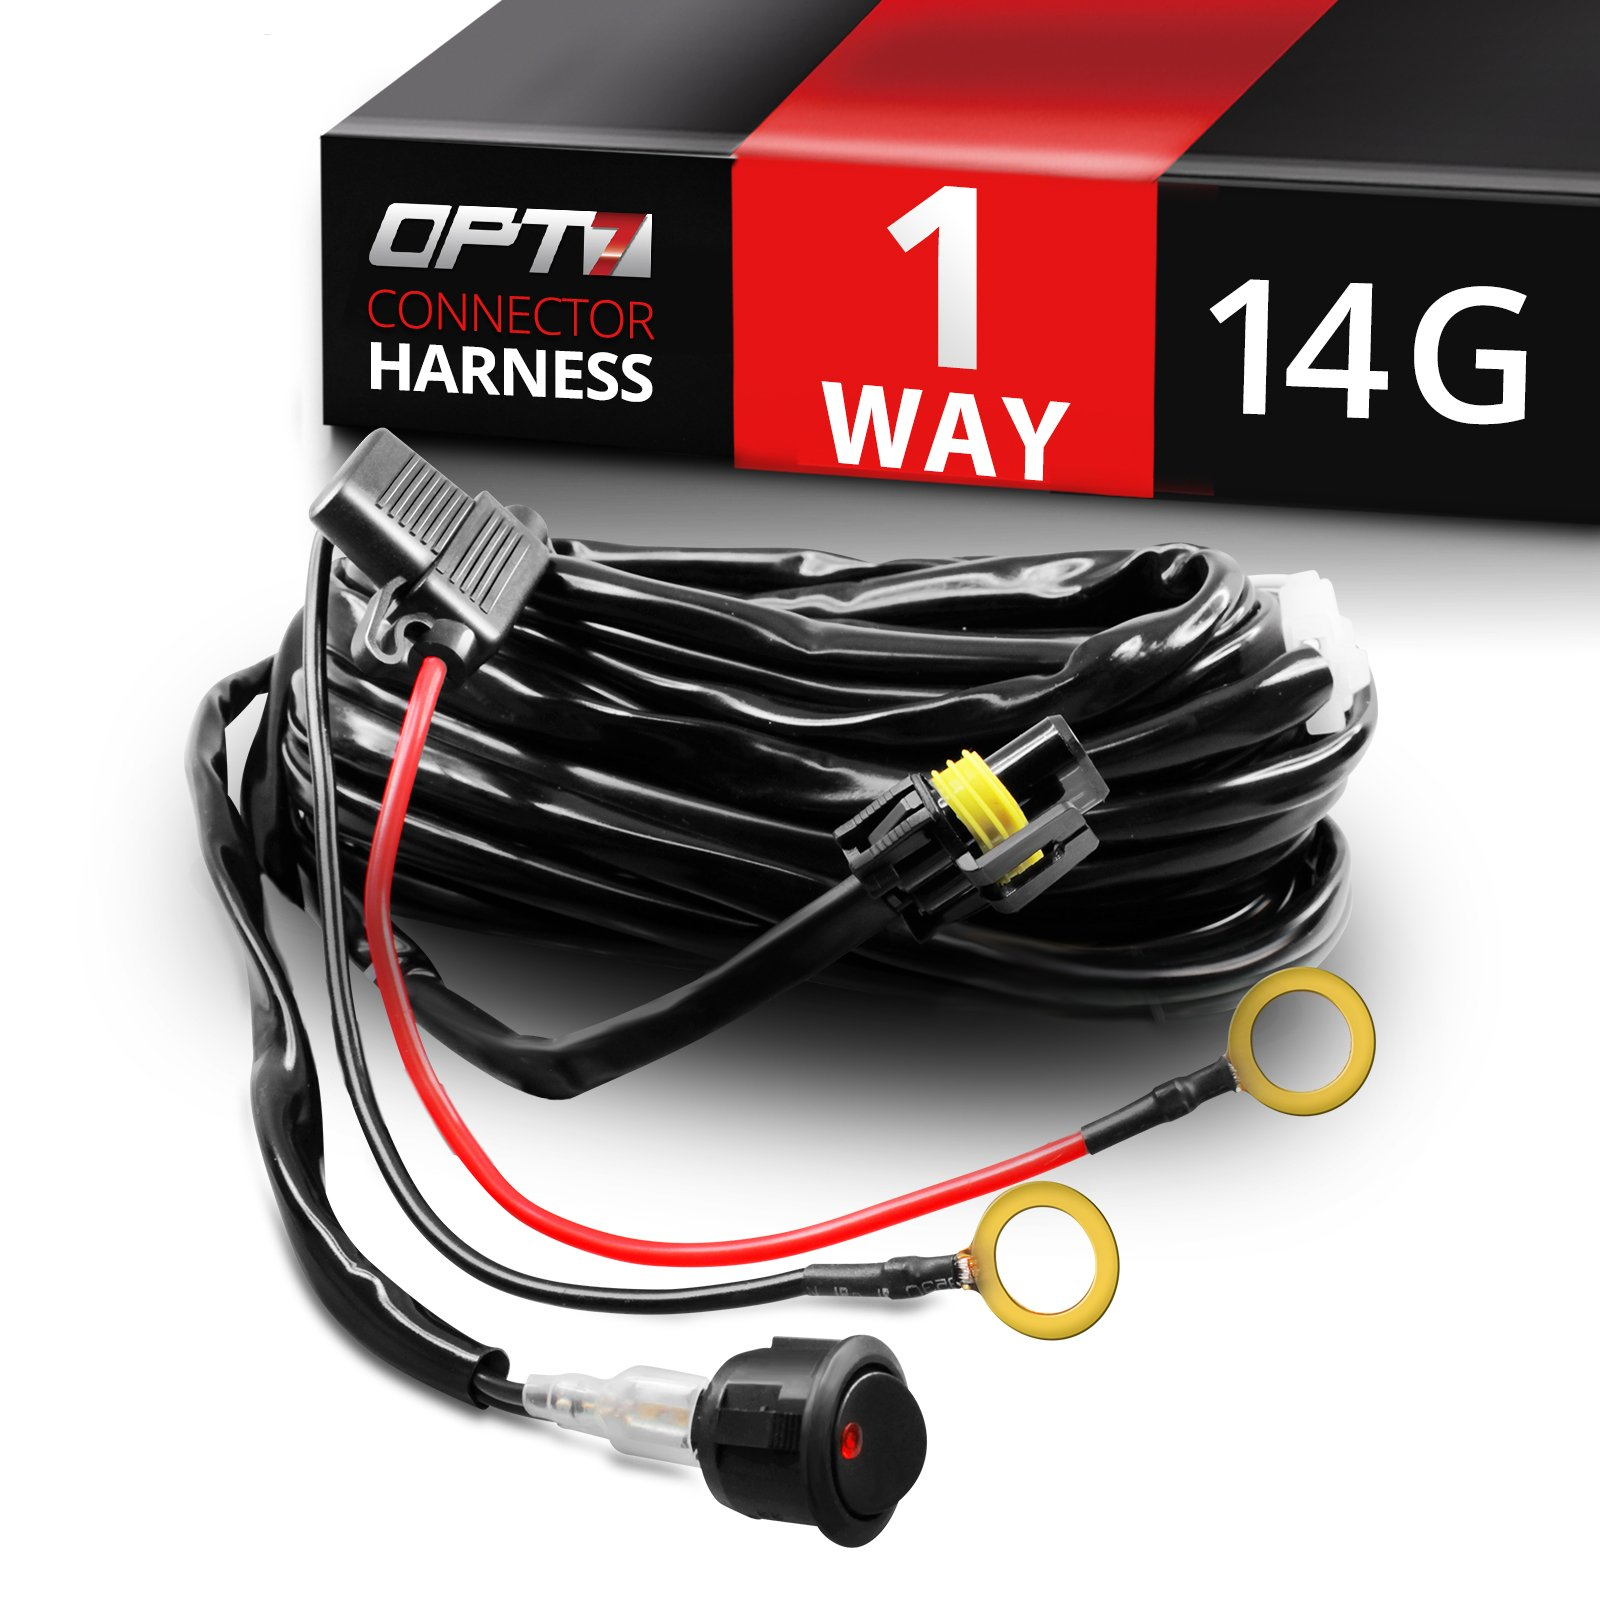 Light Bar Wiring Harness With Quick Connect - Wiring Block Diagram on